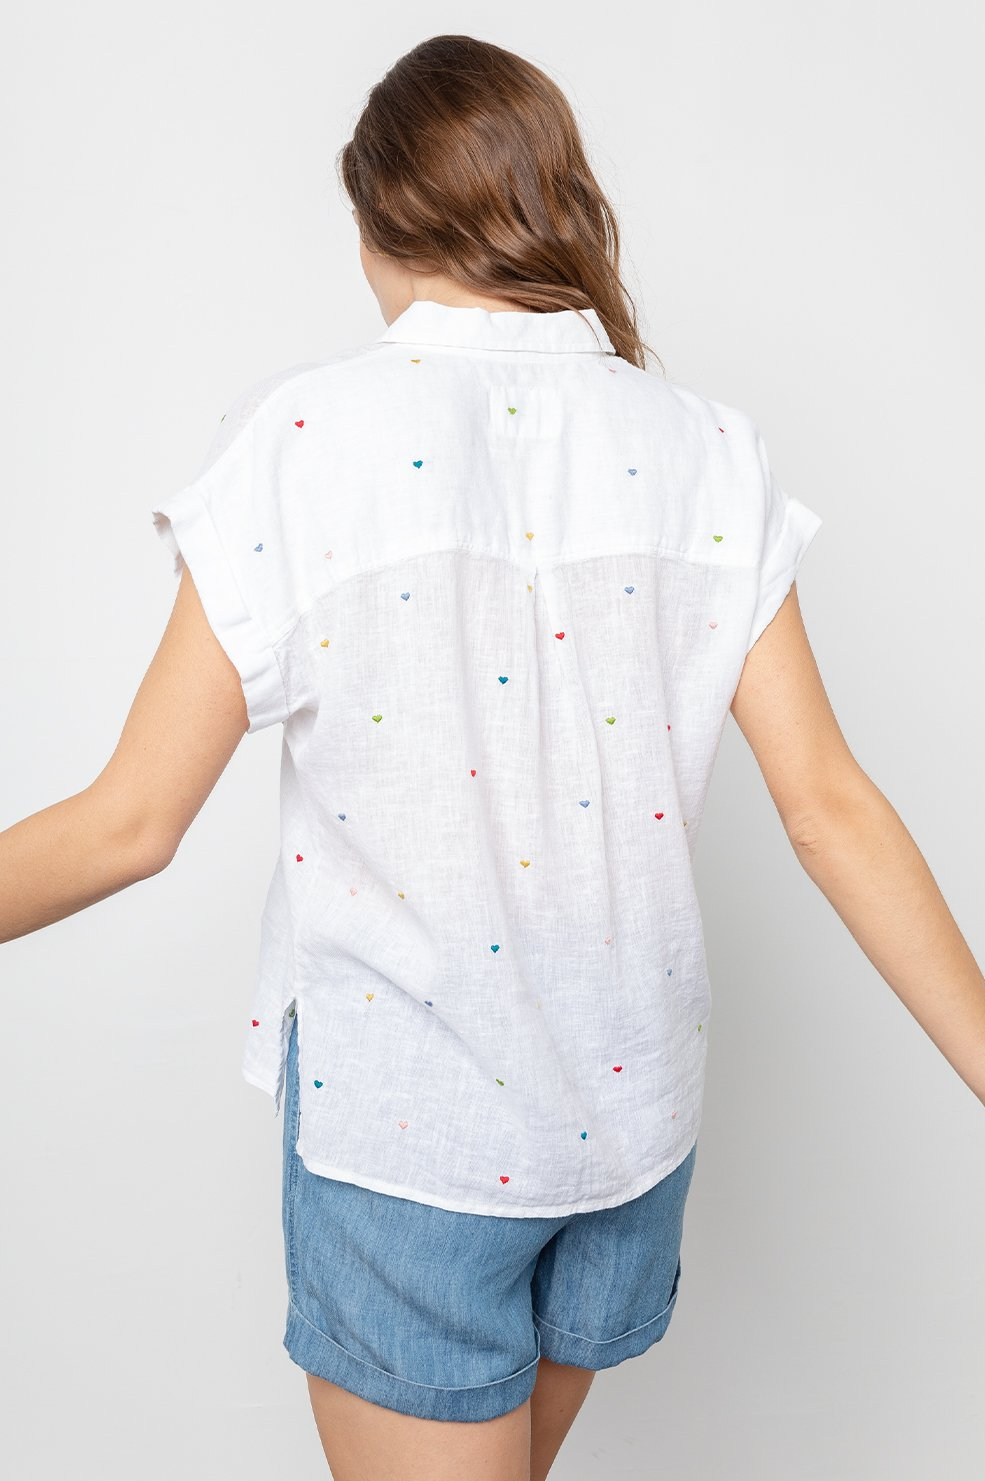 WHITNEY - WHITE EMBROIDERED HEARTS by Rails - 2